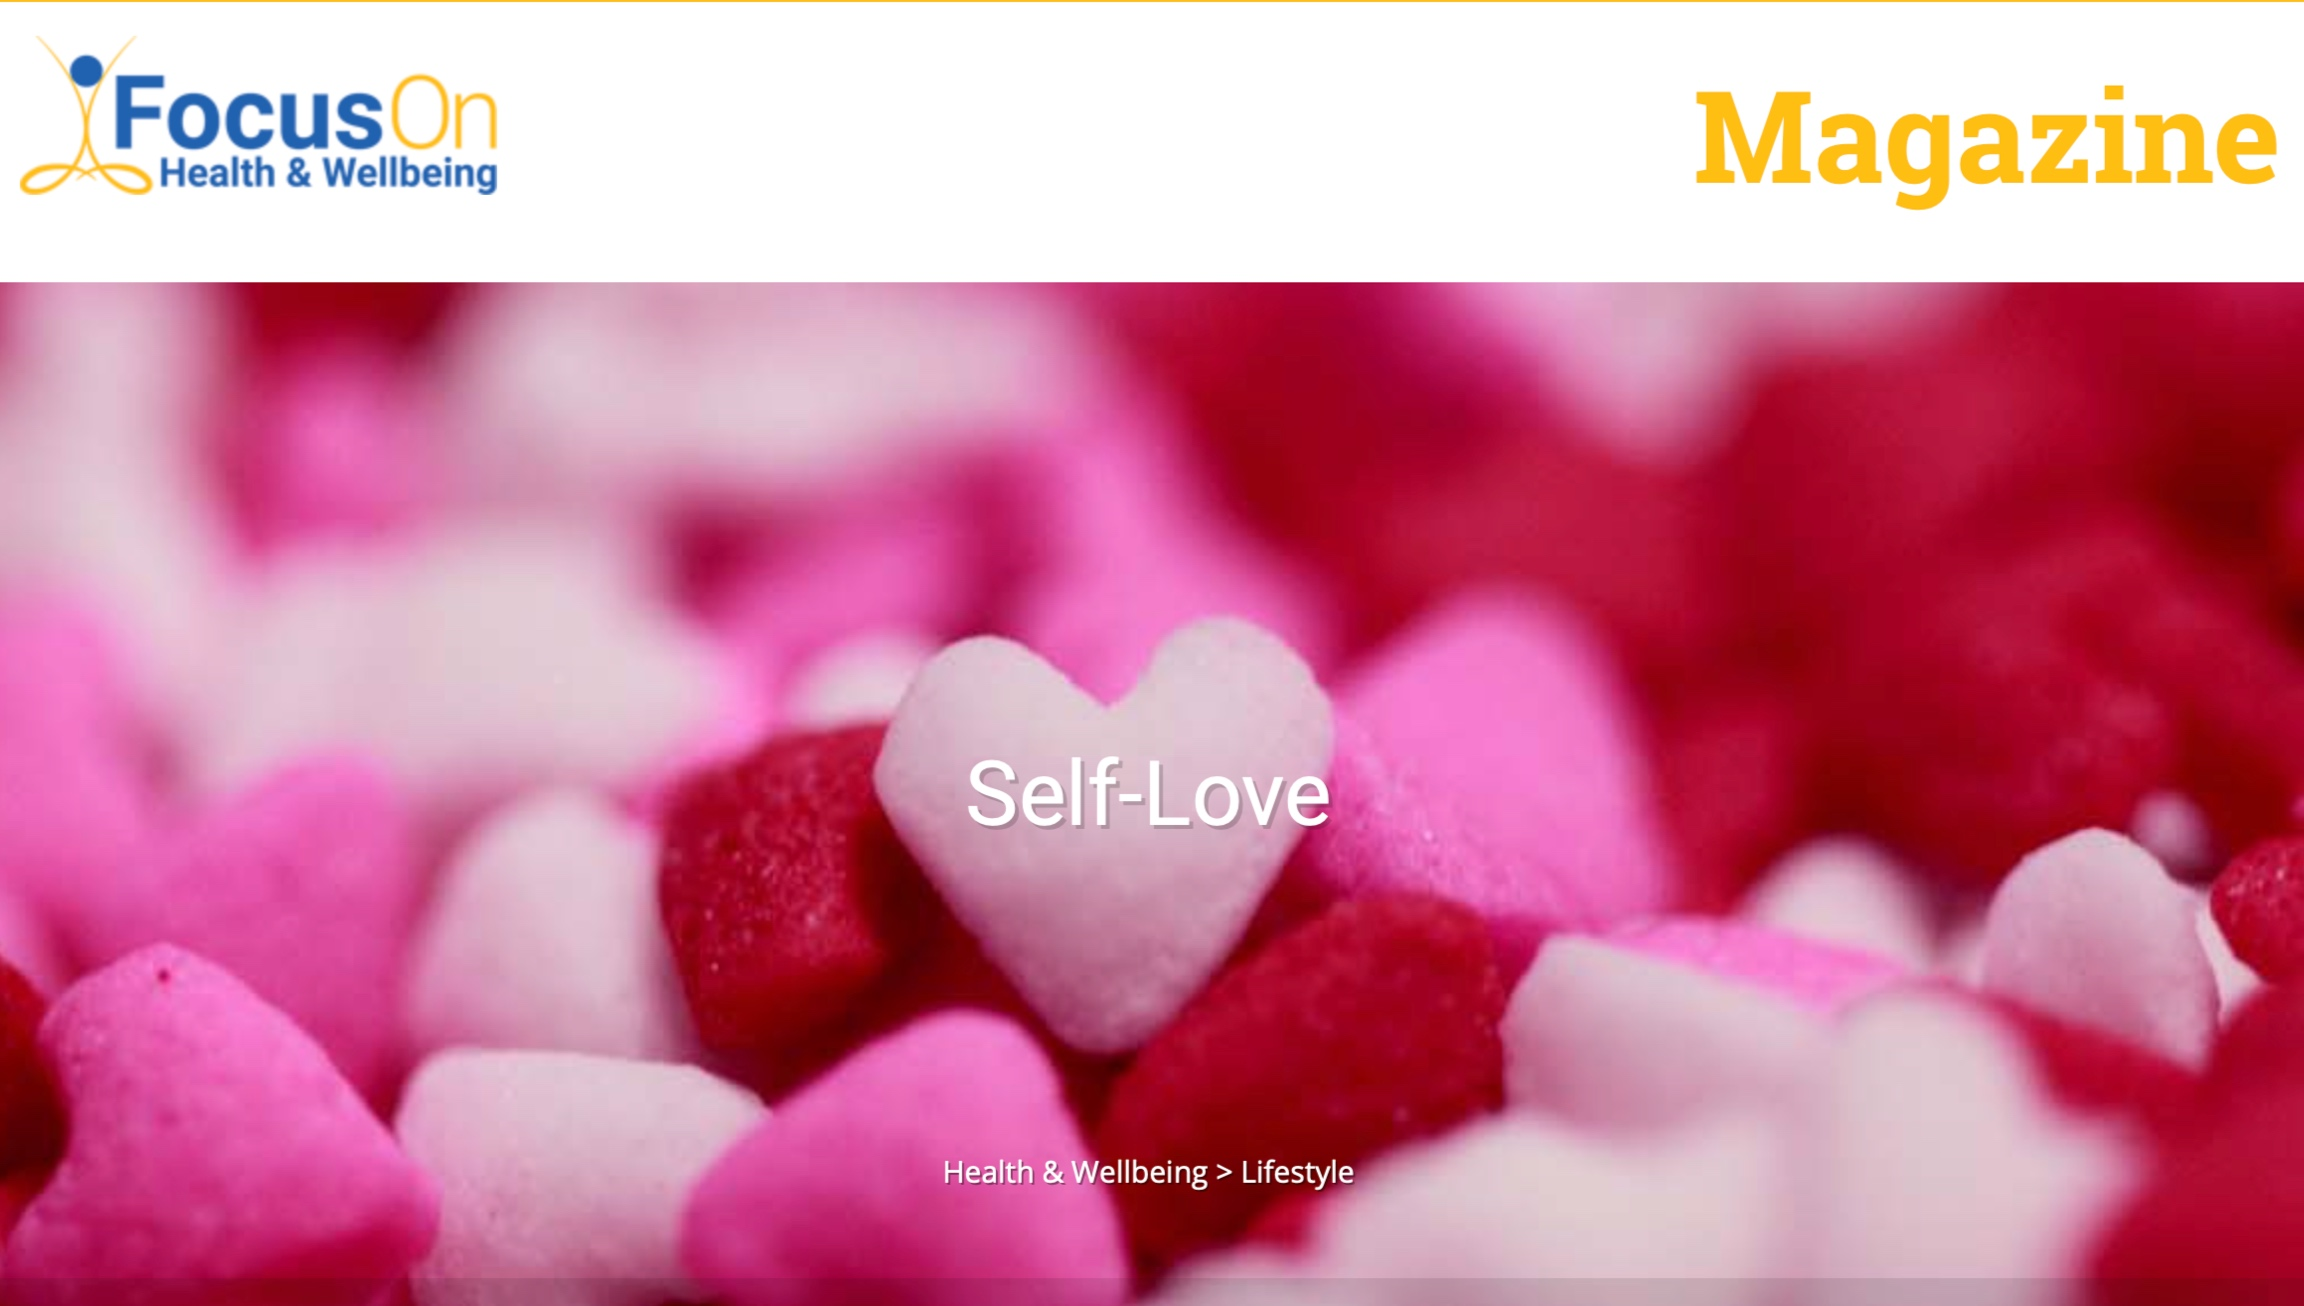 Focus on Health & Wellbeing Magazine - Self-care is not selfish. Self-care is not indulgent…I detail how important Self-Love is for Focus on Health & Wellbeing Magazine.